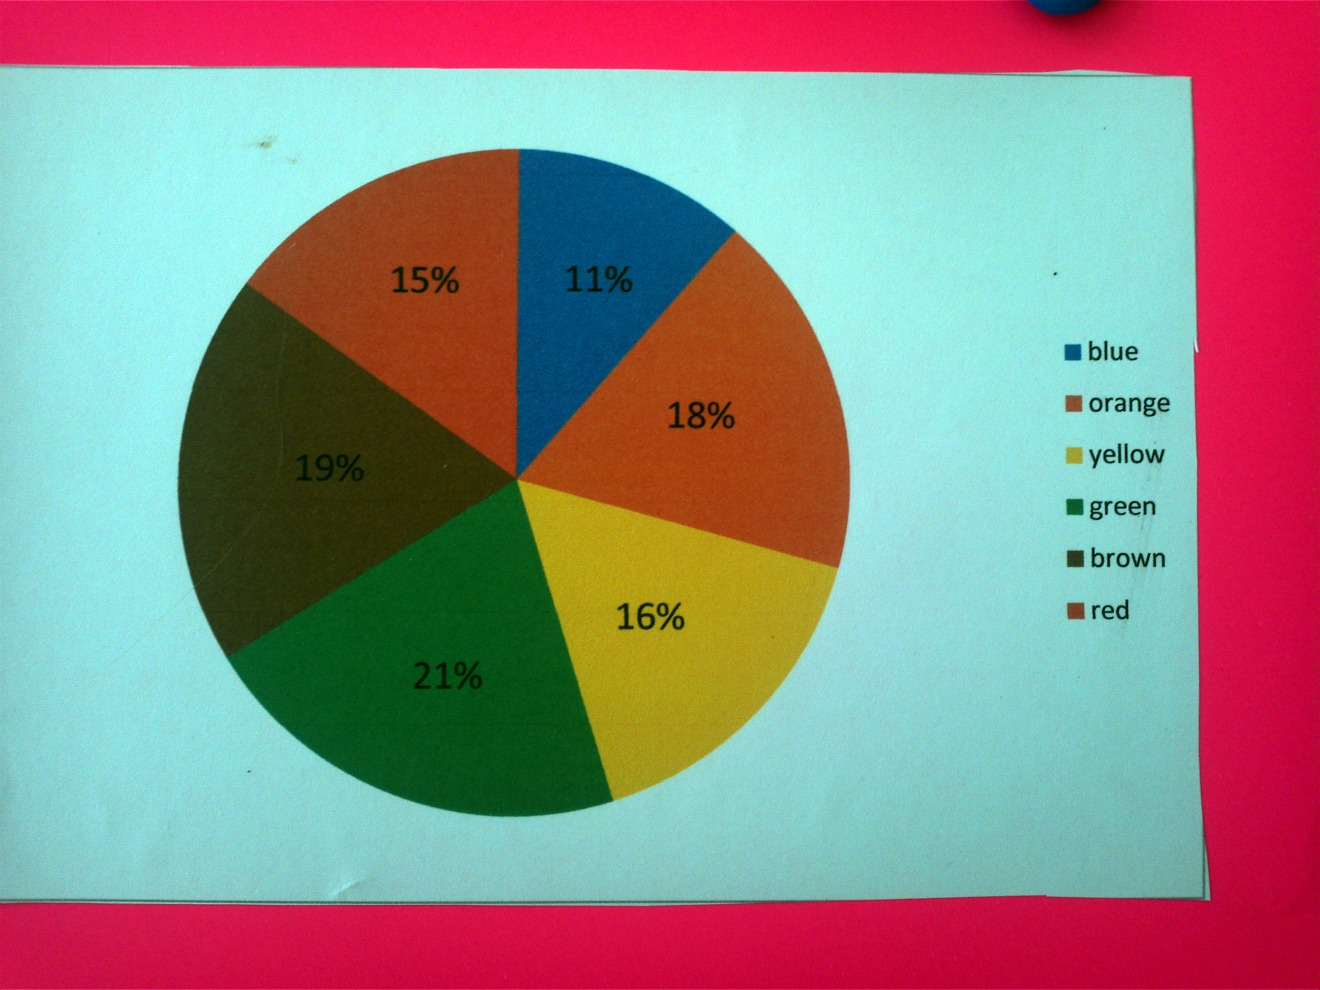 Math n spire january 2012 pie chart of color breakdown by percentages geenschuldenfo Choice Image